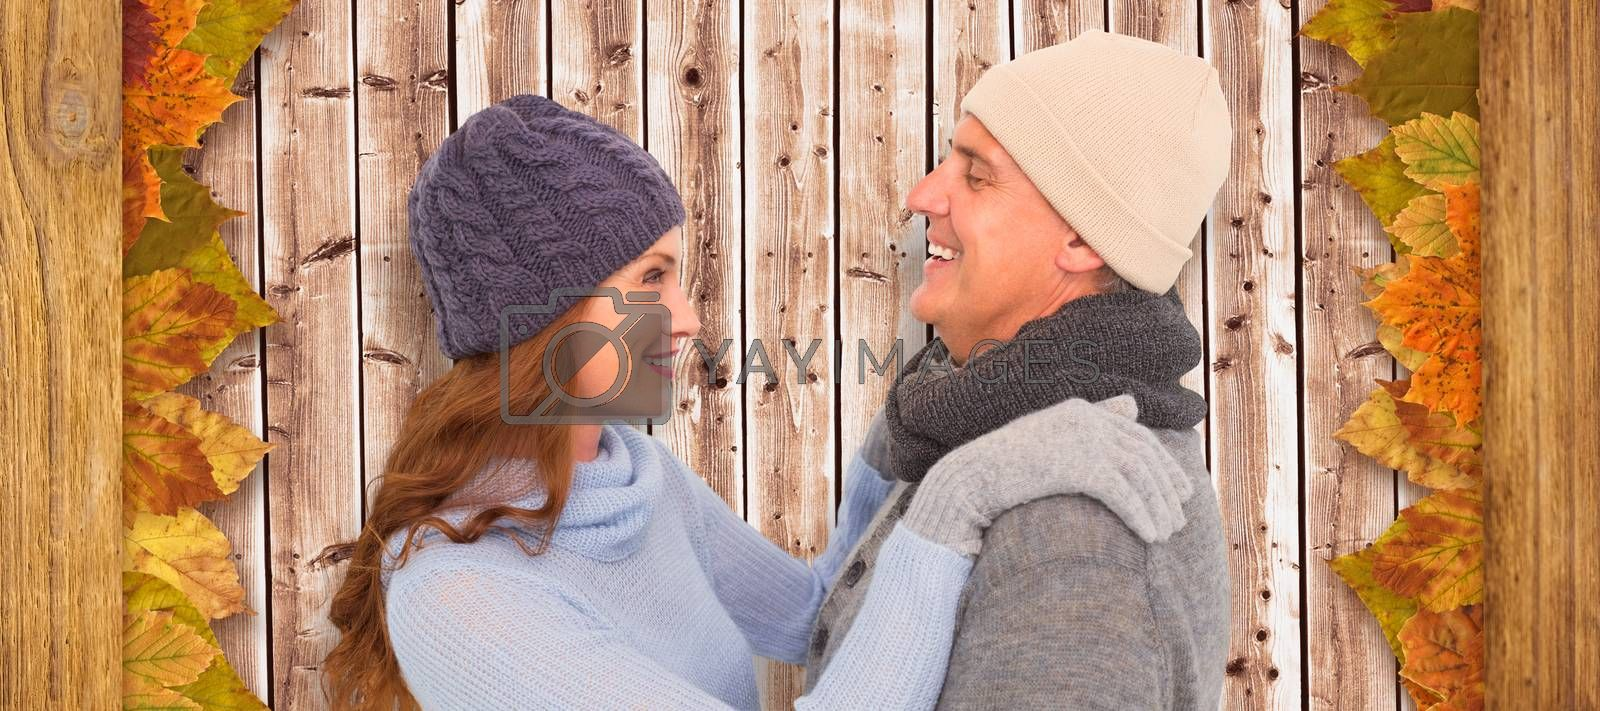 Happy couple in warm clothing against wooden planks background